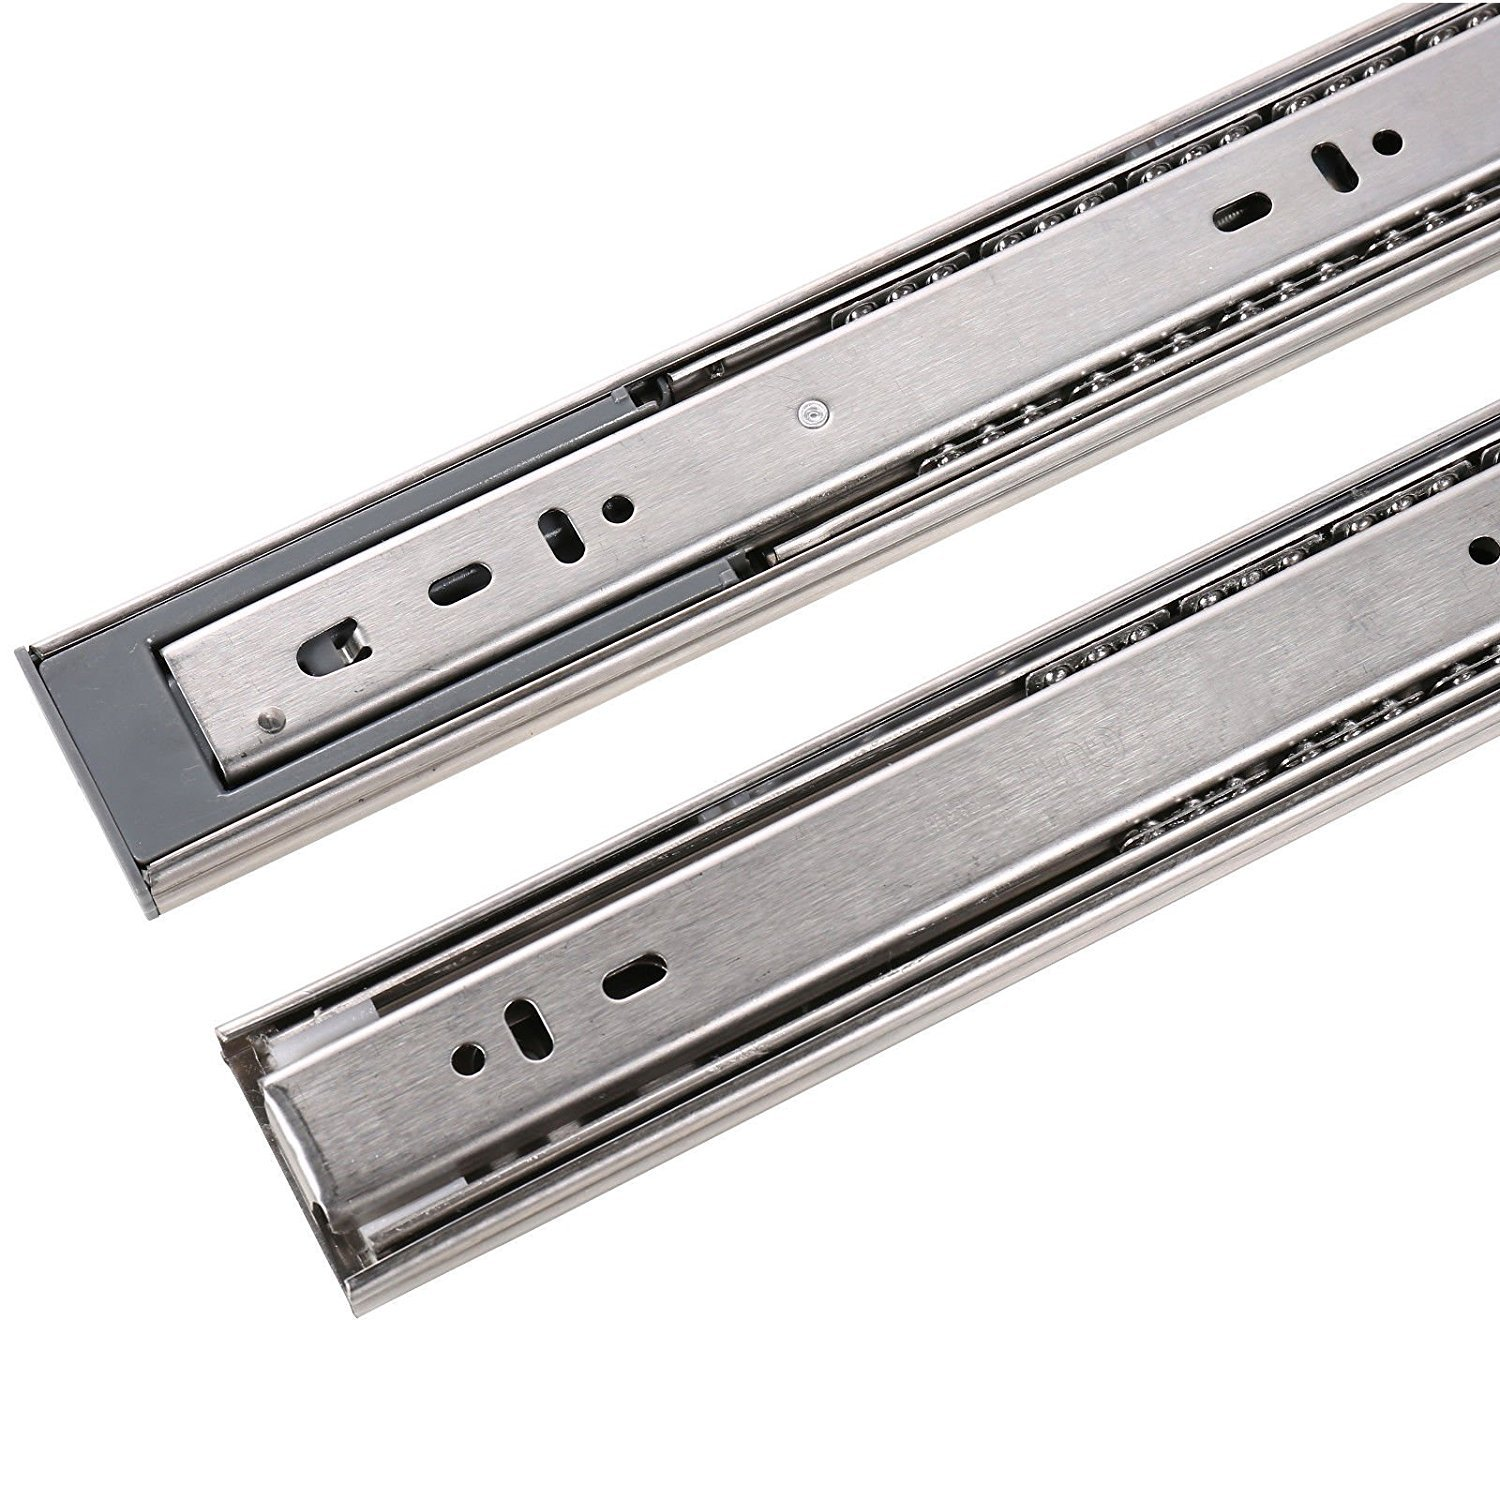 MATEE 10-In Mute Stainless Steel Damping Buffer Three Section Drawer Slide Soft & Self Closing Ball Bearing Runner Zinc Plated with Spring Design